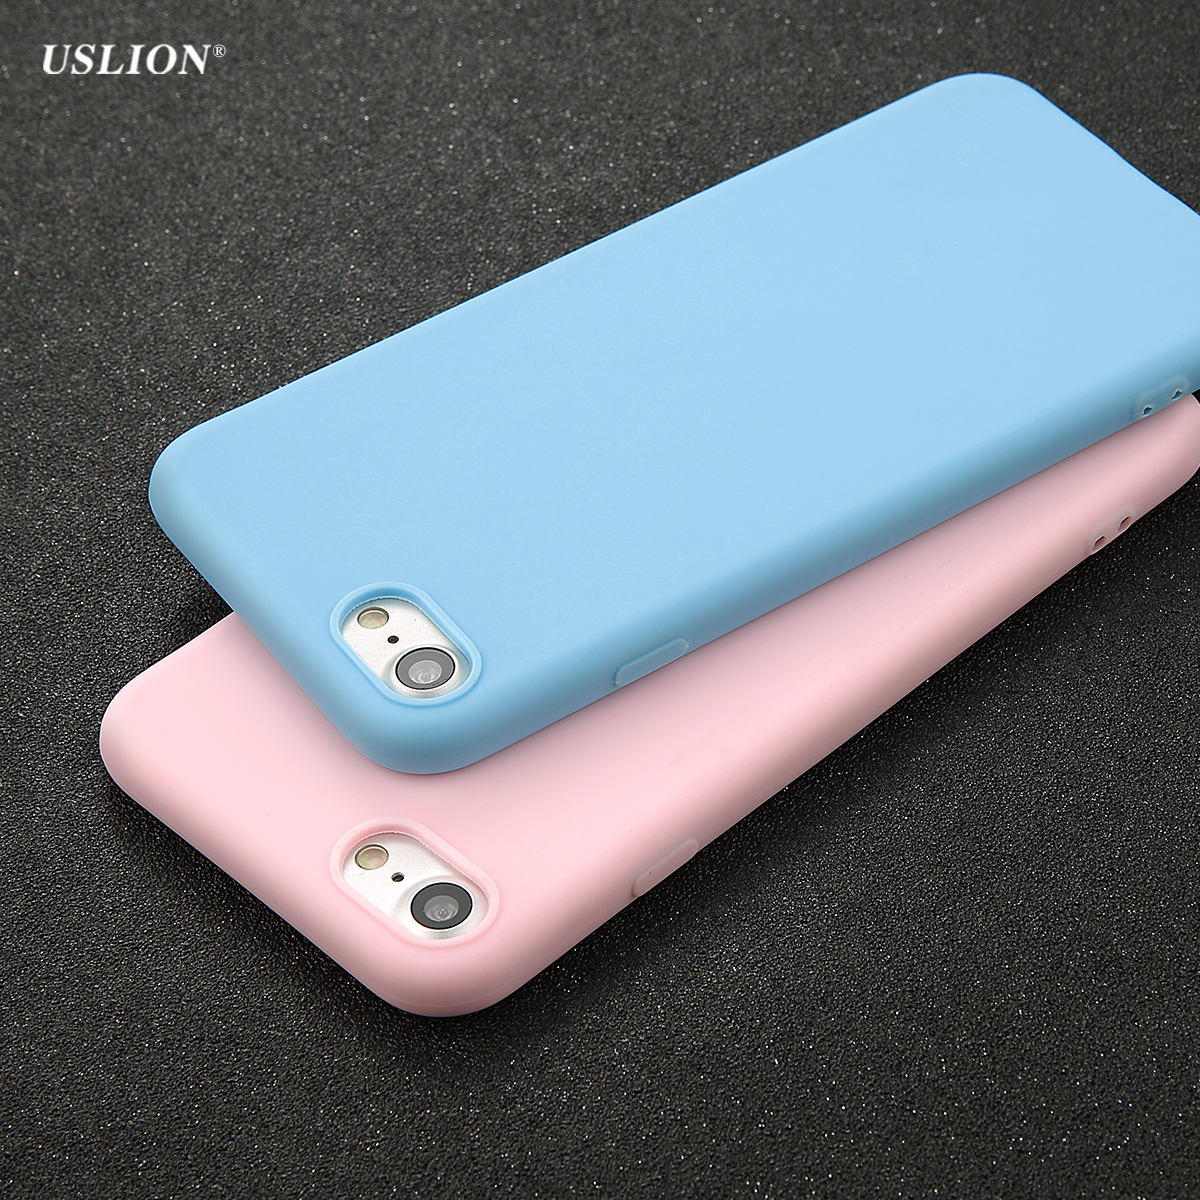 USLION Phone Case For iPhone 7 6 6s 8 X Plus 5 5s SE XR XS Simple Solid Color Ultrathin Soft TPU Cases Candy Color Back Cover cute rabbit style protective silicone back case for iphone 5 5s white